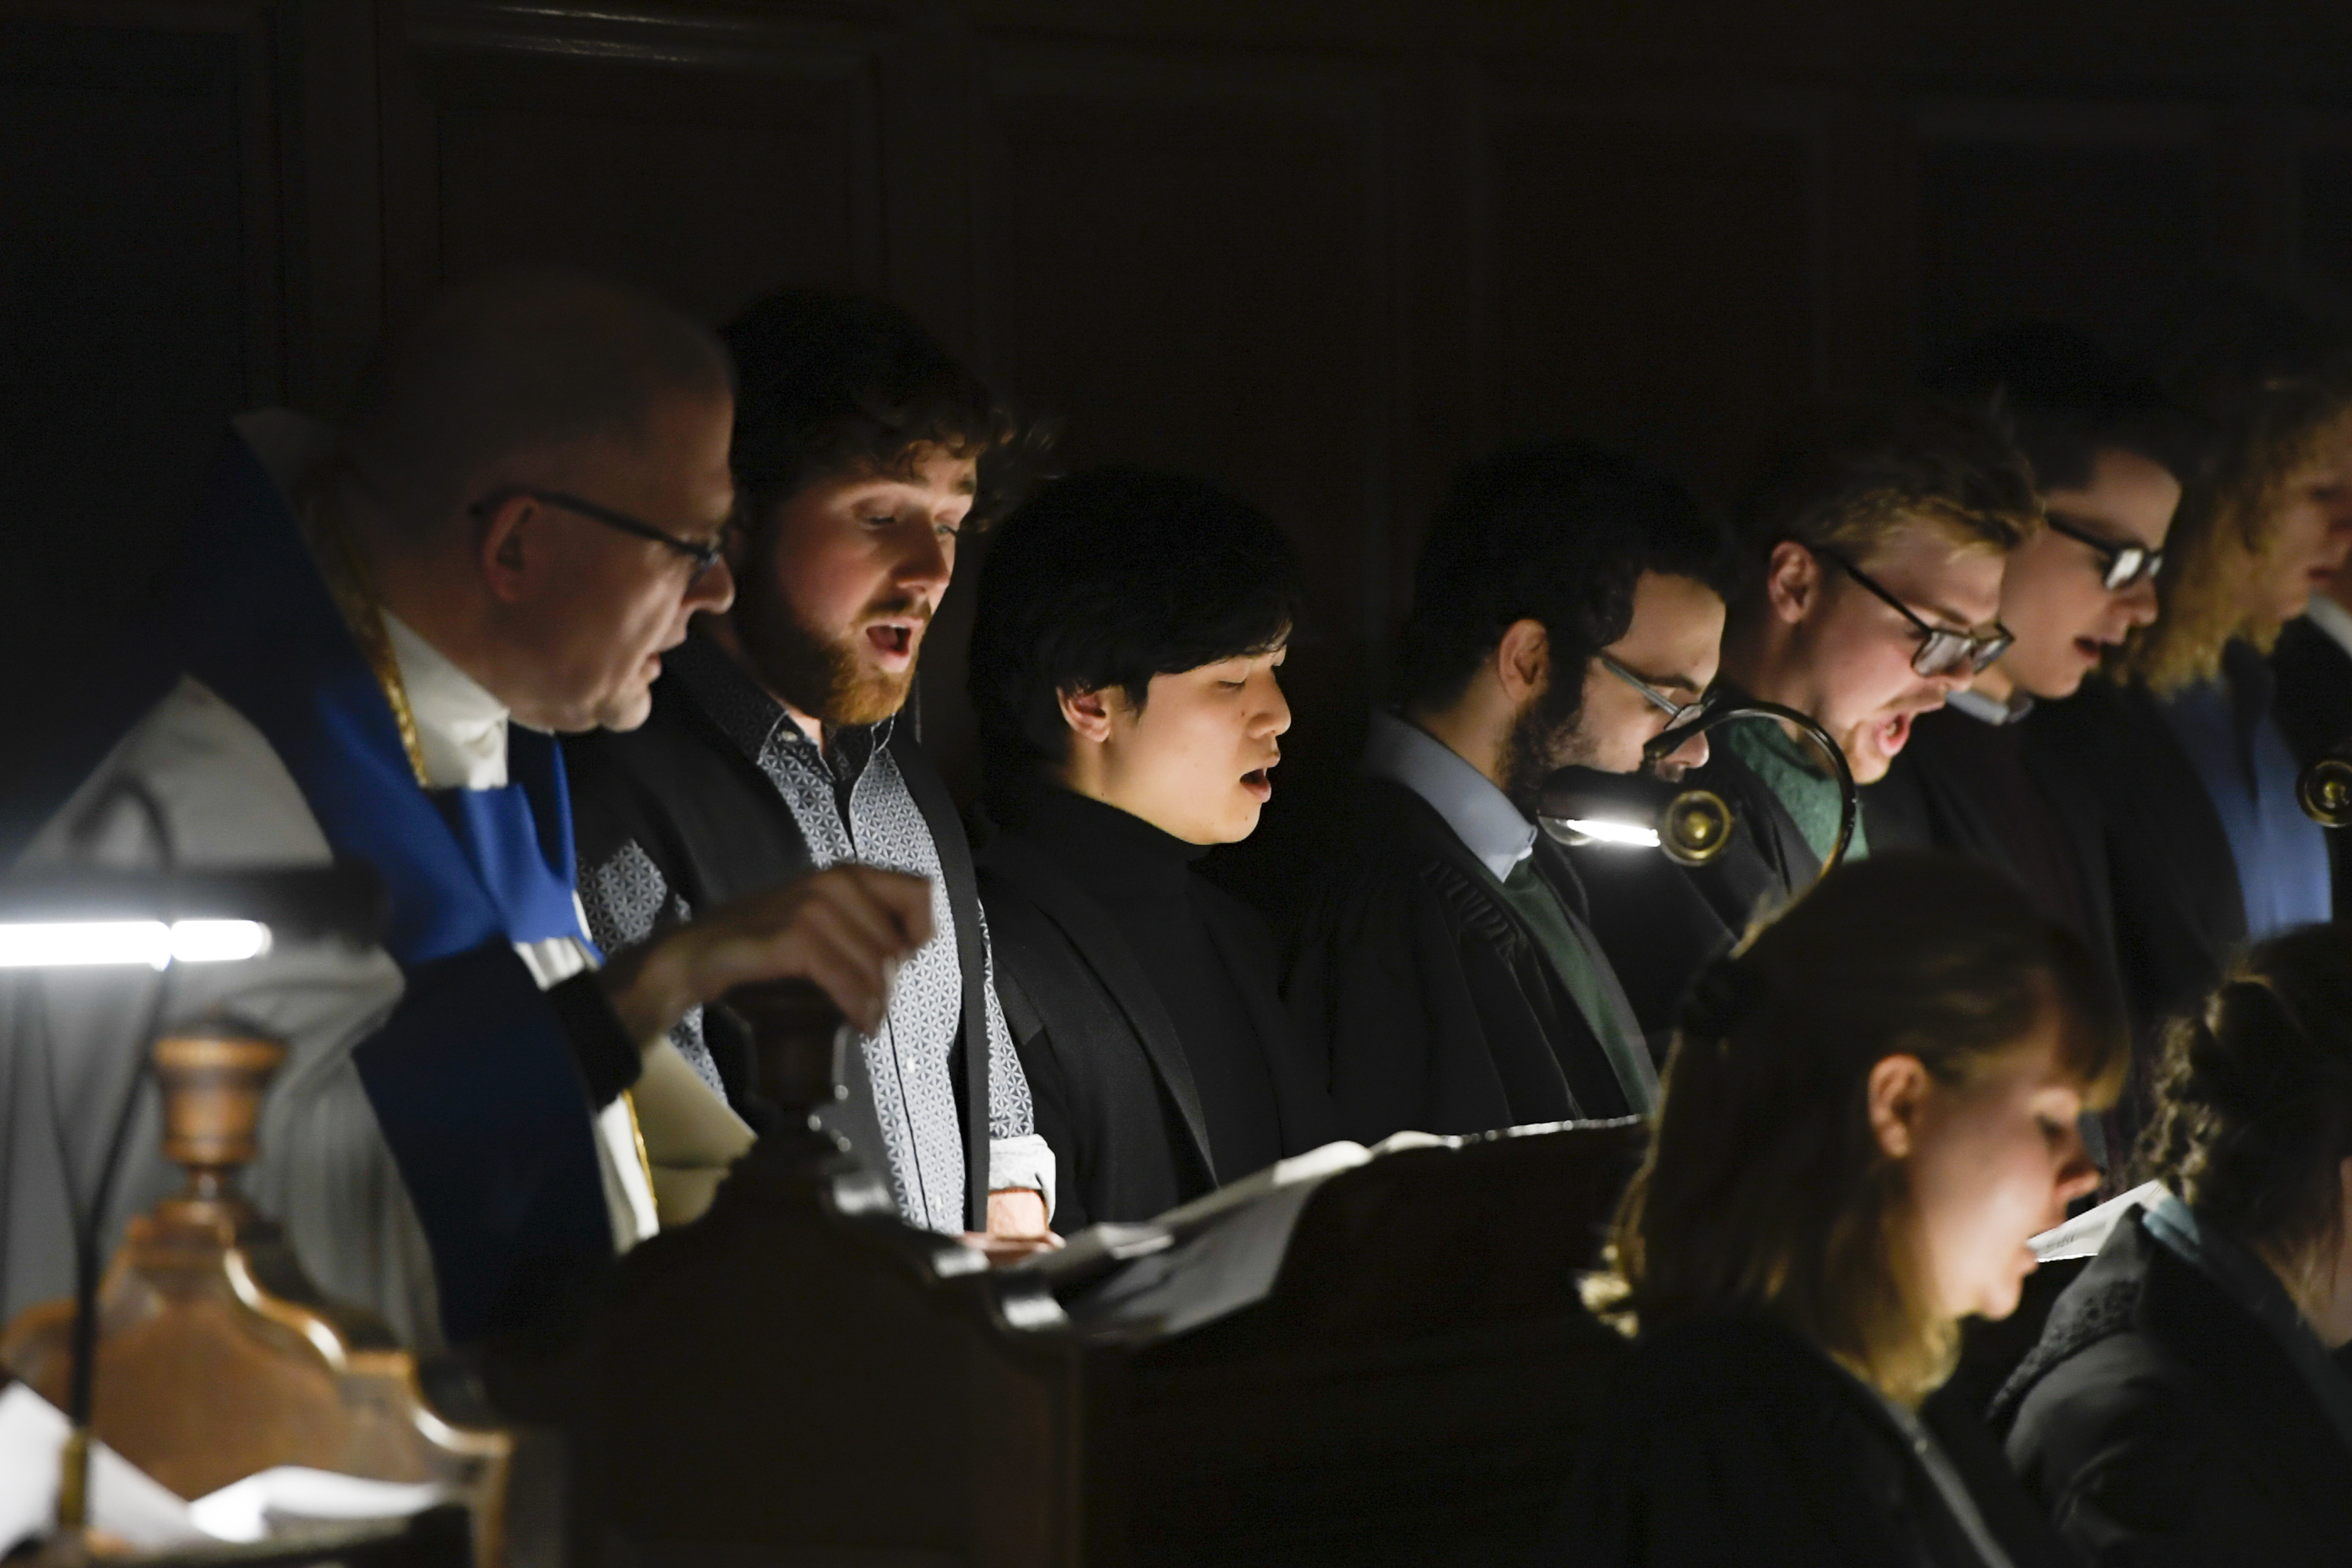 """The Pembroke College Chapel Choir and the chapel's chaplain, the Rev. Andrew Teal, left, sing during the traditional Church of England """"Nine Lessons and Carols"""" service at the Pembroke College Chapel in Oxford, England, on Sunday, Nov. 25, 2018."""